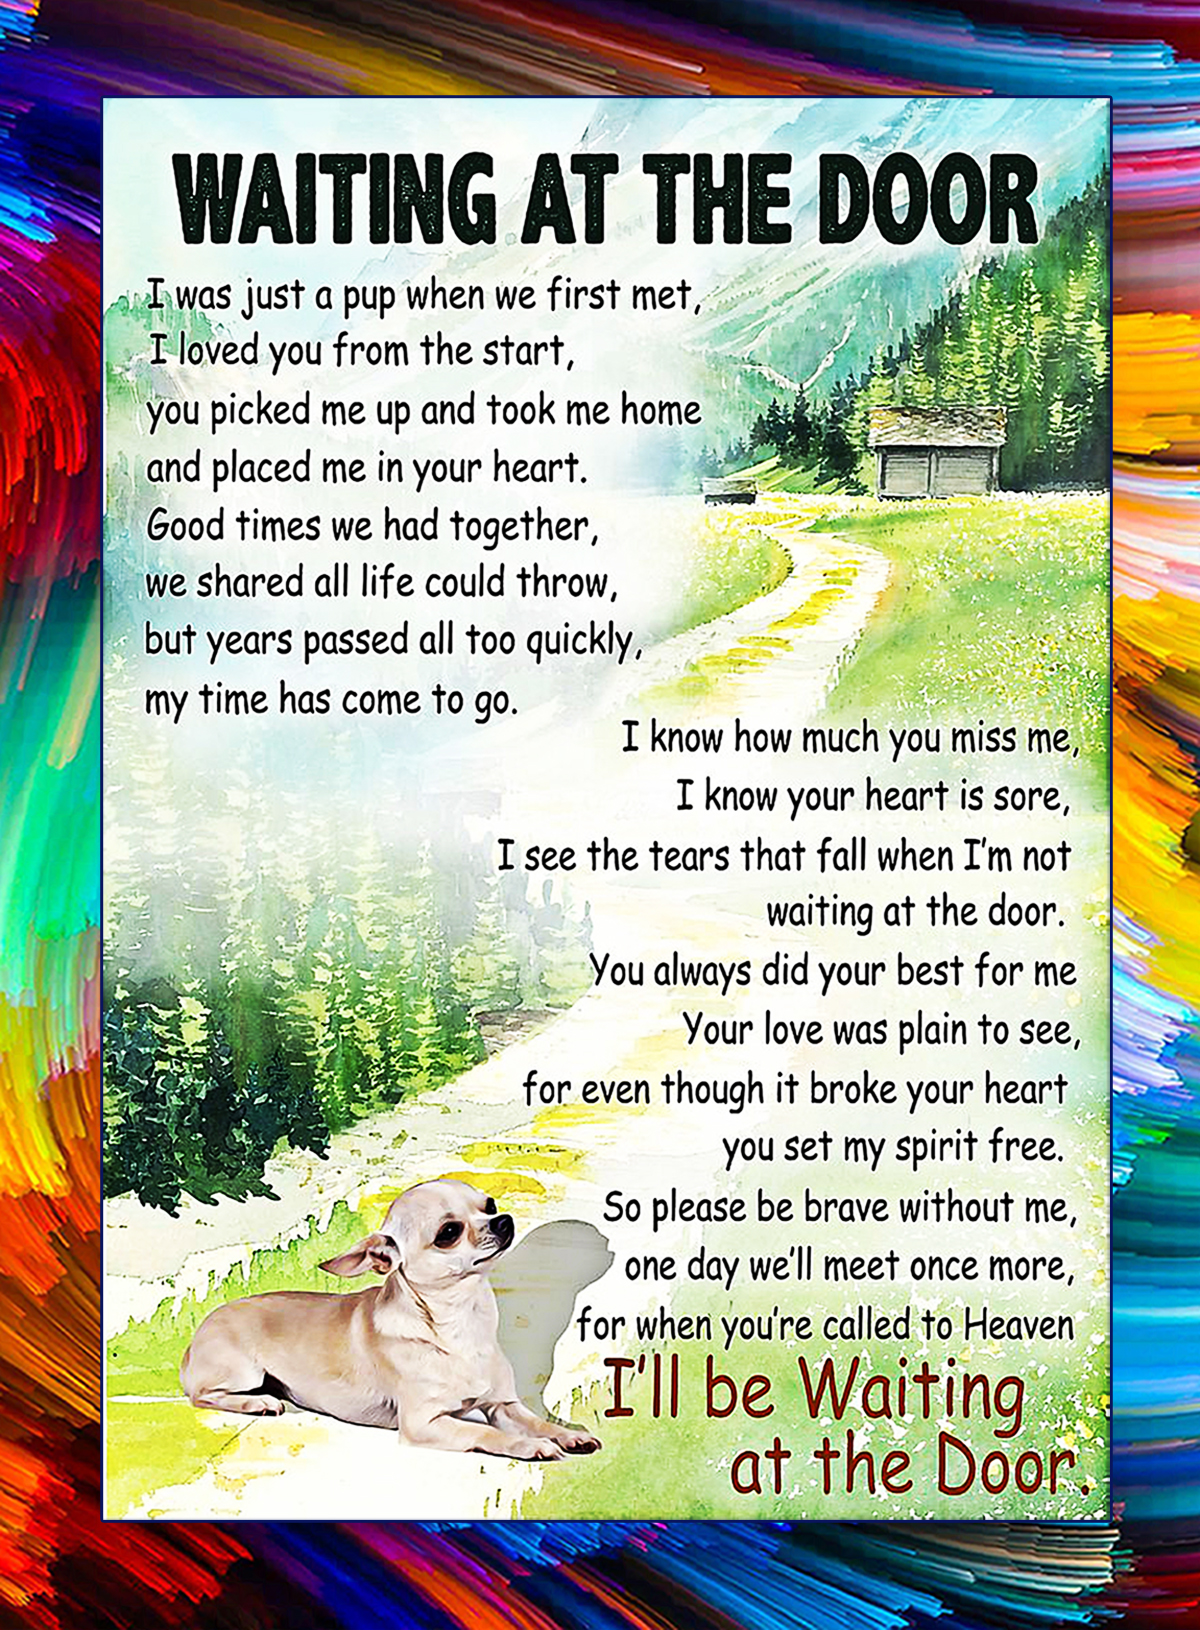 Chihuahua waiting at the door poster - A1